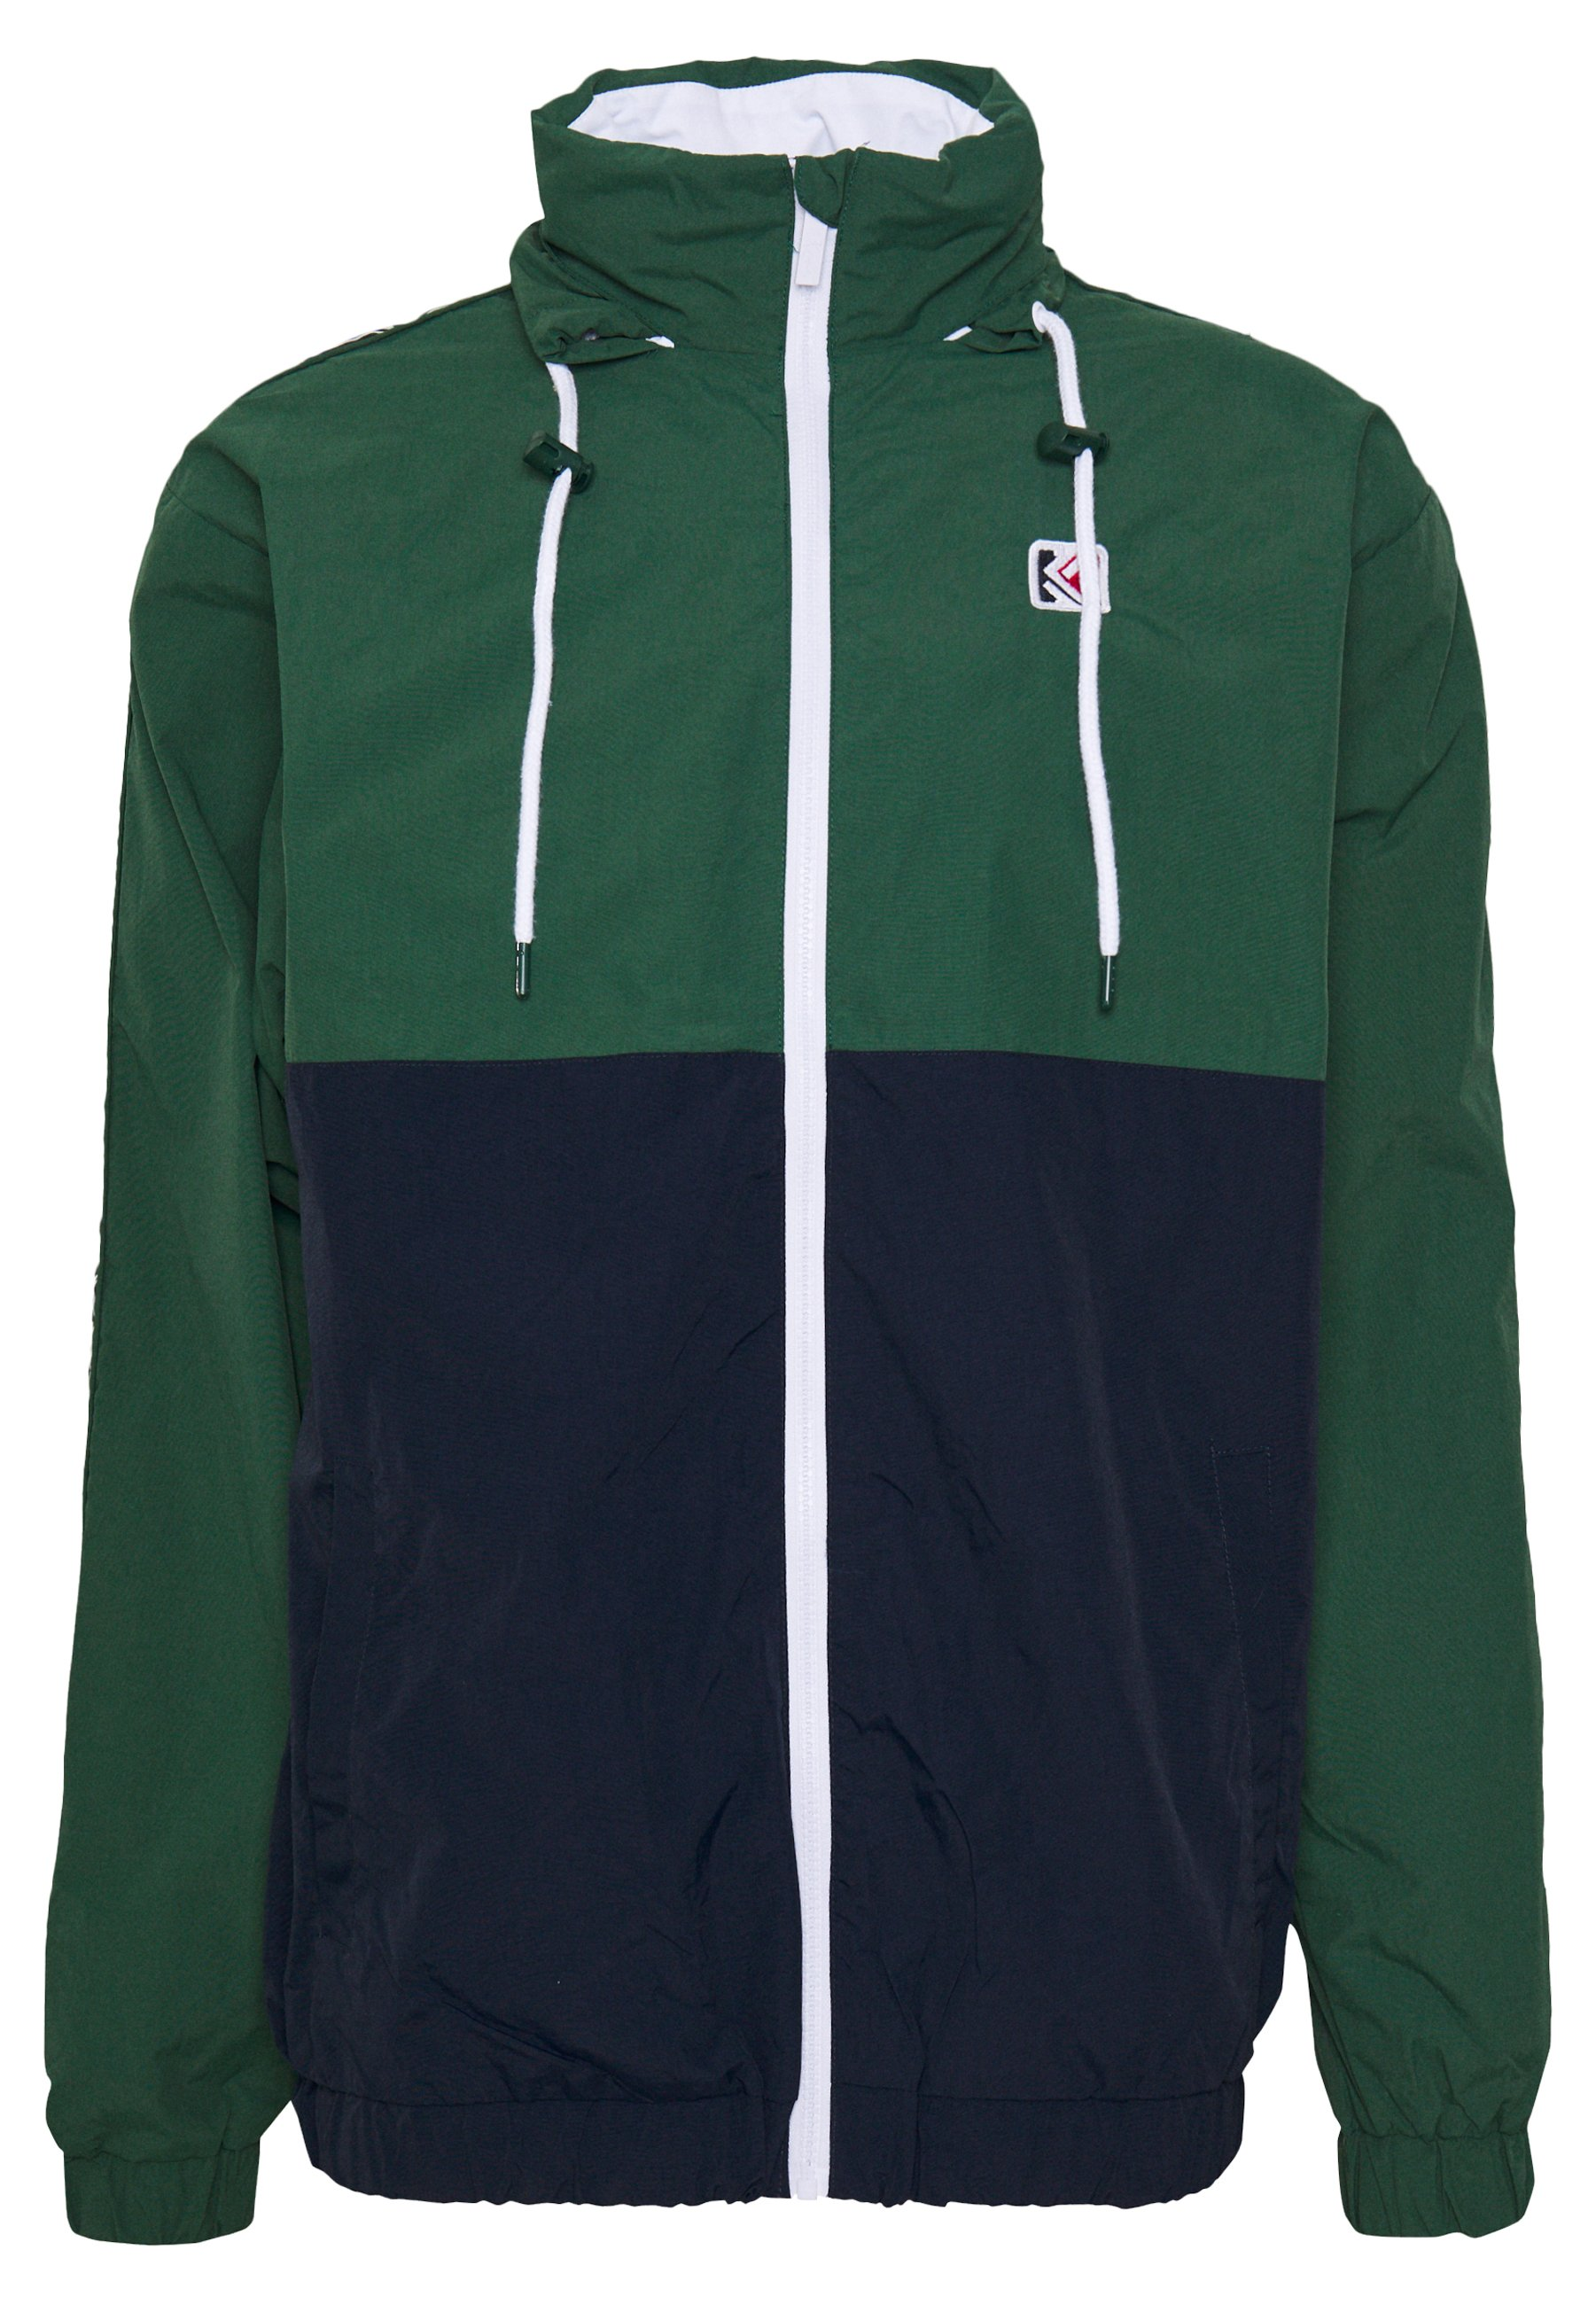 Karl Kani RETRO TAPE TRACKJACKET - Veste de survêtement - green/navy